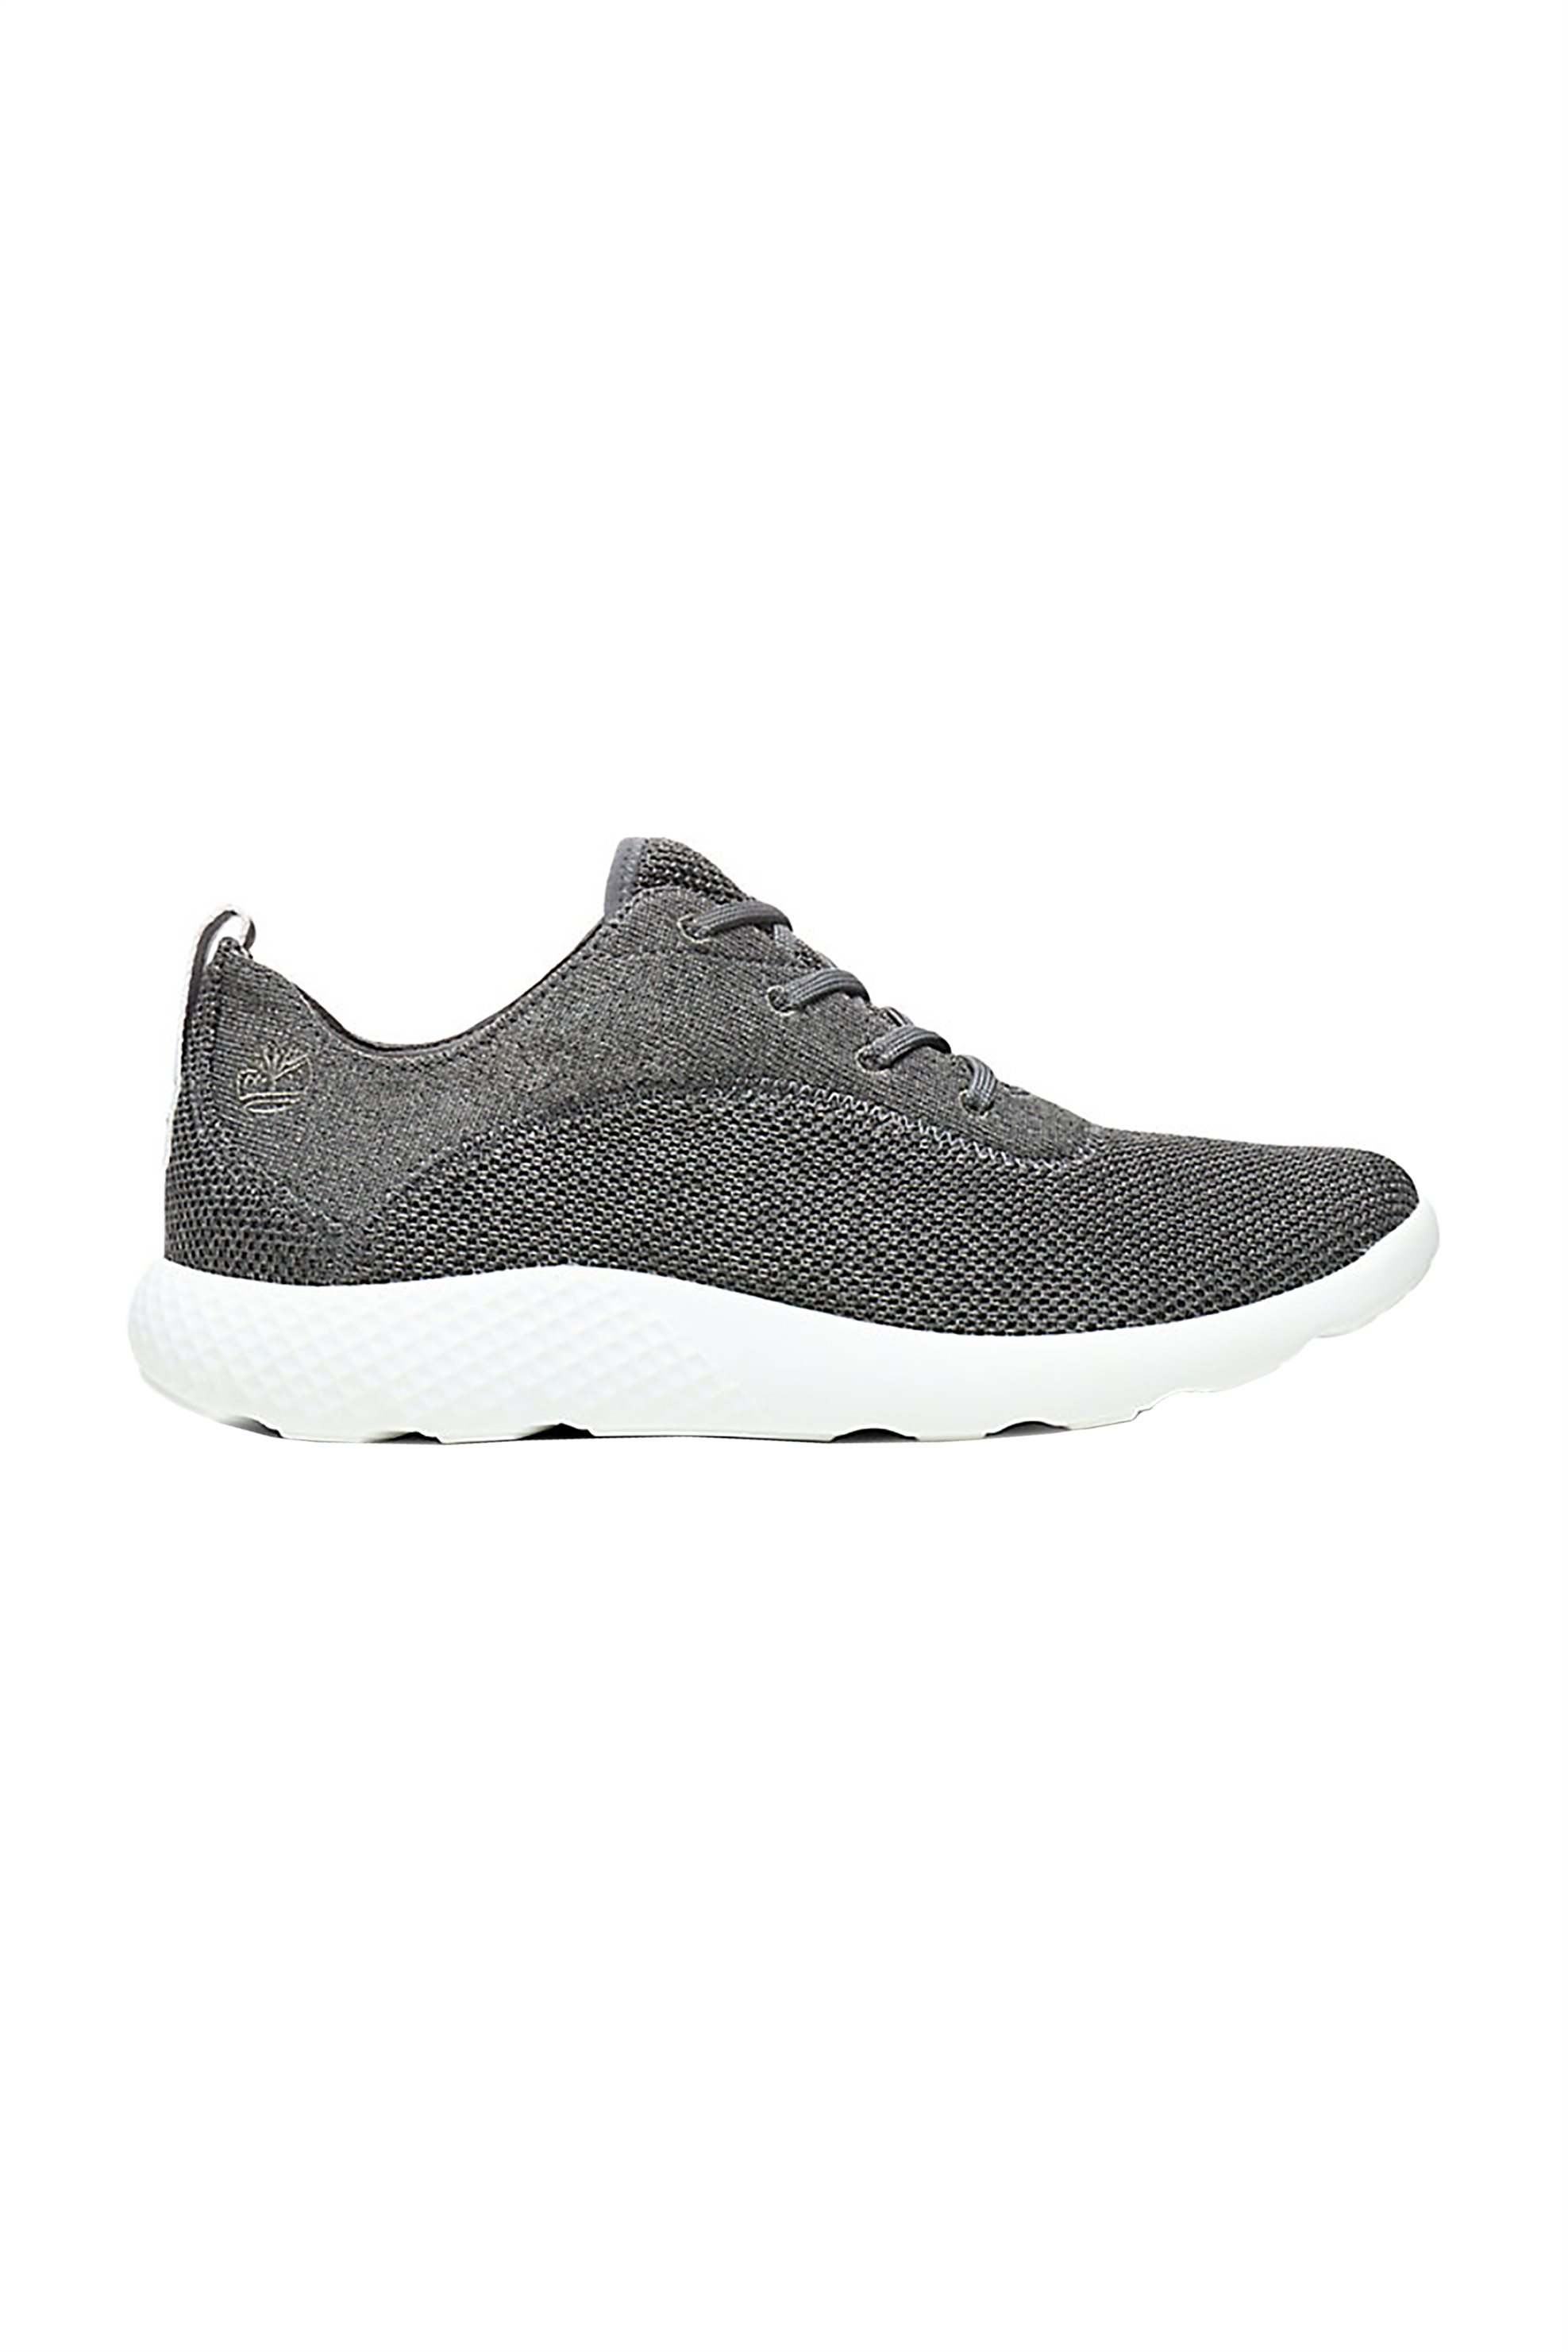 0faabc792cf Notos Timberland ανδρικά sneakers Flyroam FlexiKnit Oxford – TB0A1ZUY0331 –  Γκρι